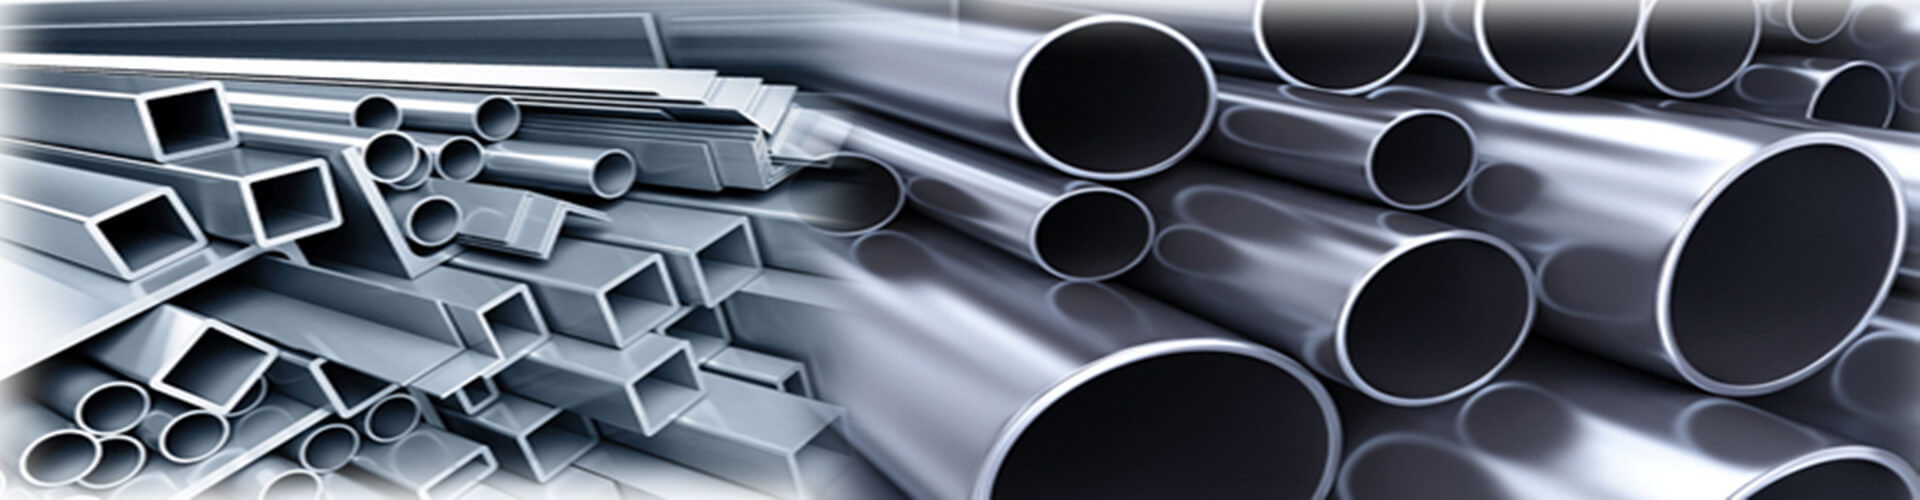 stainless-steel-pipes-tubes-manufacturer-exporter